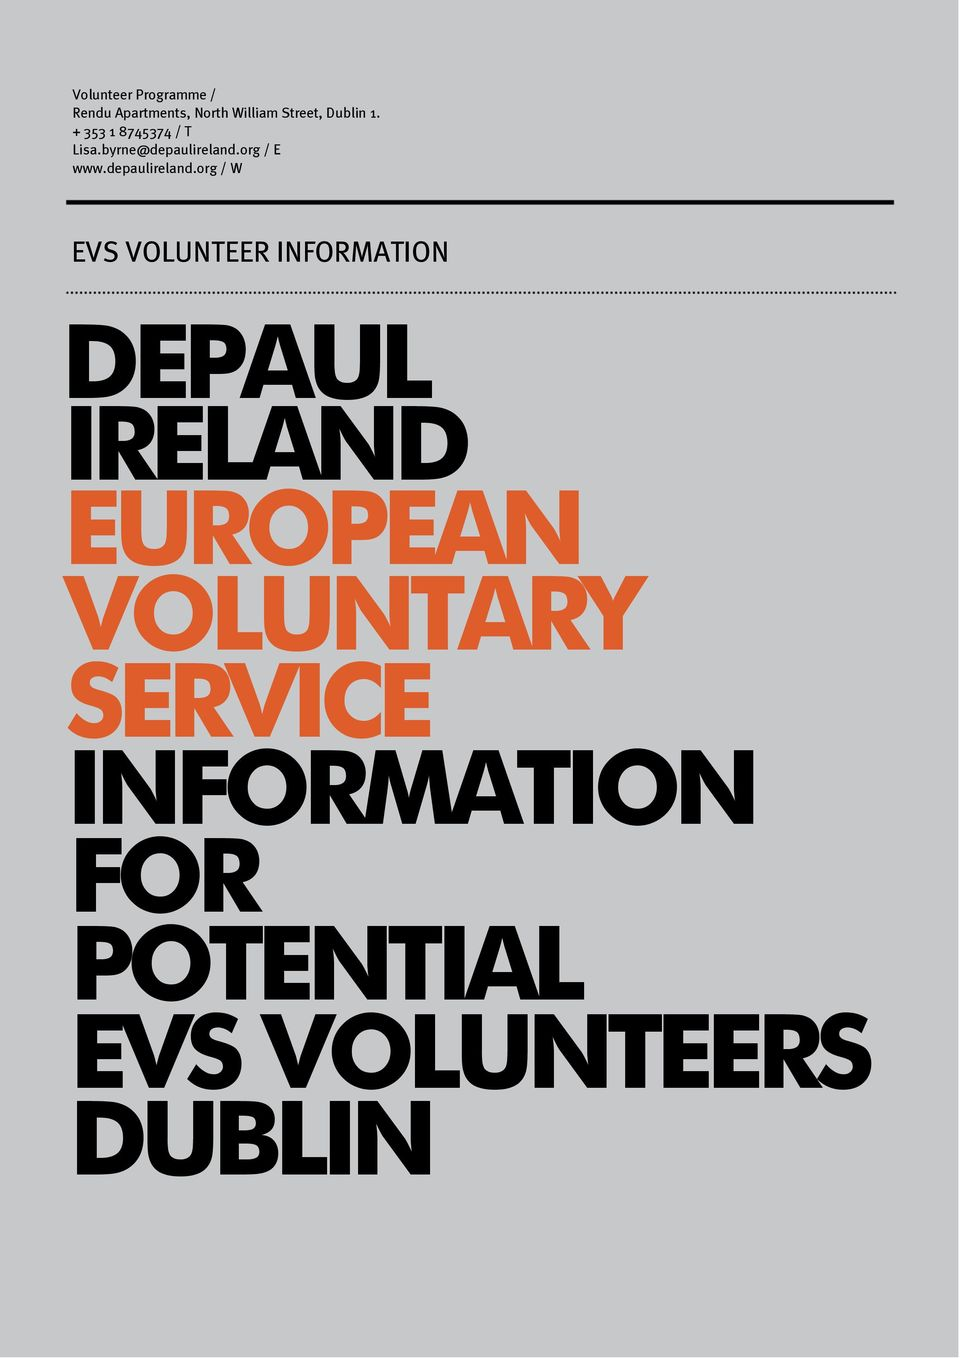 VOLUNTARY SERVICE INFORMATION